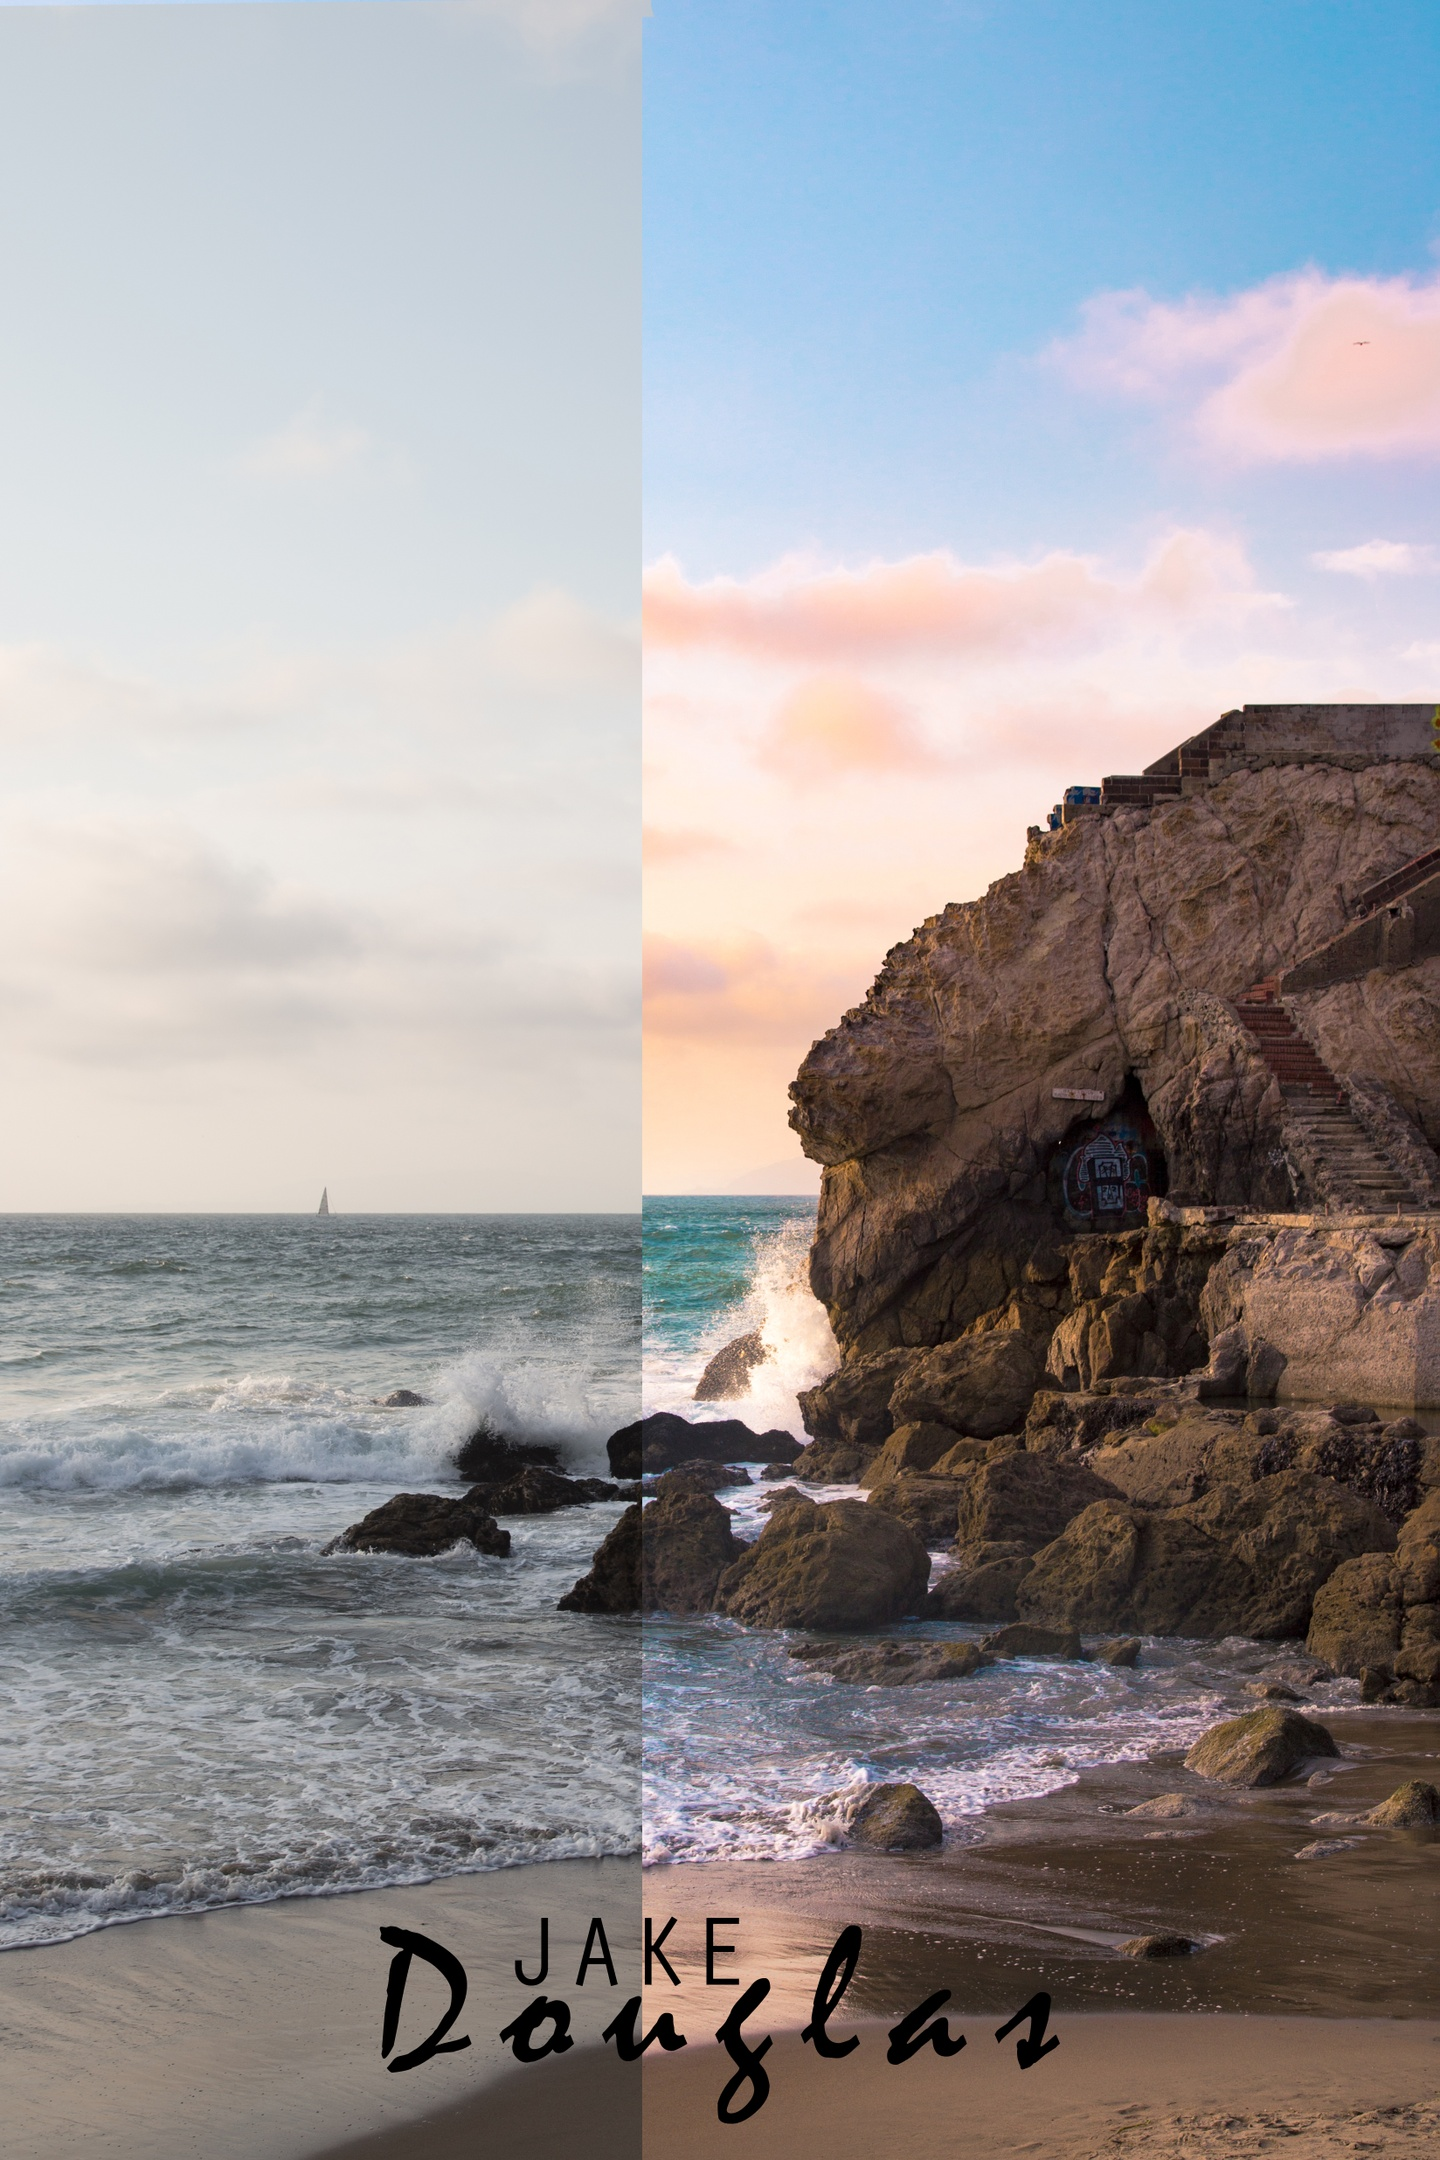 Jake Douglas' Landscape Lightroom Presets